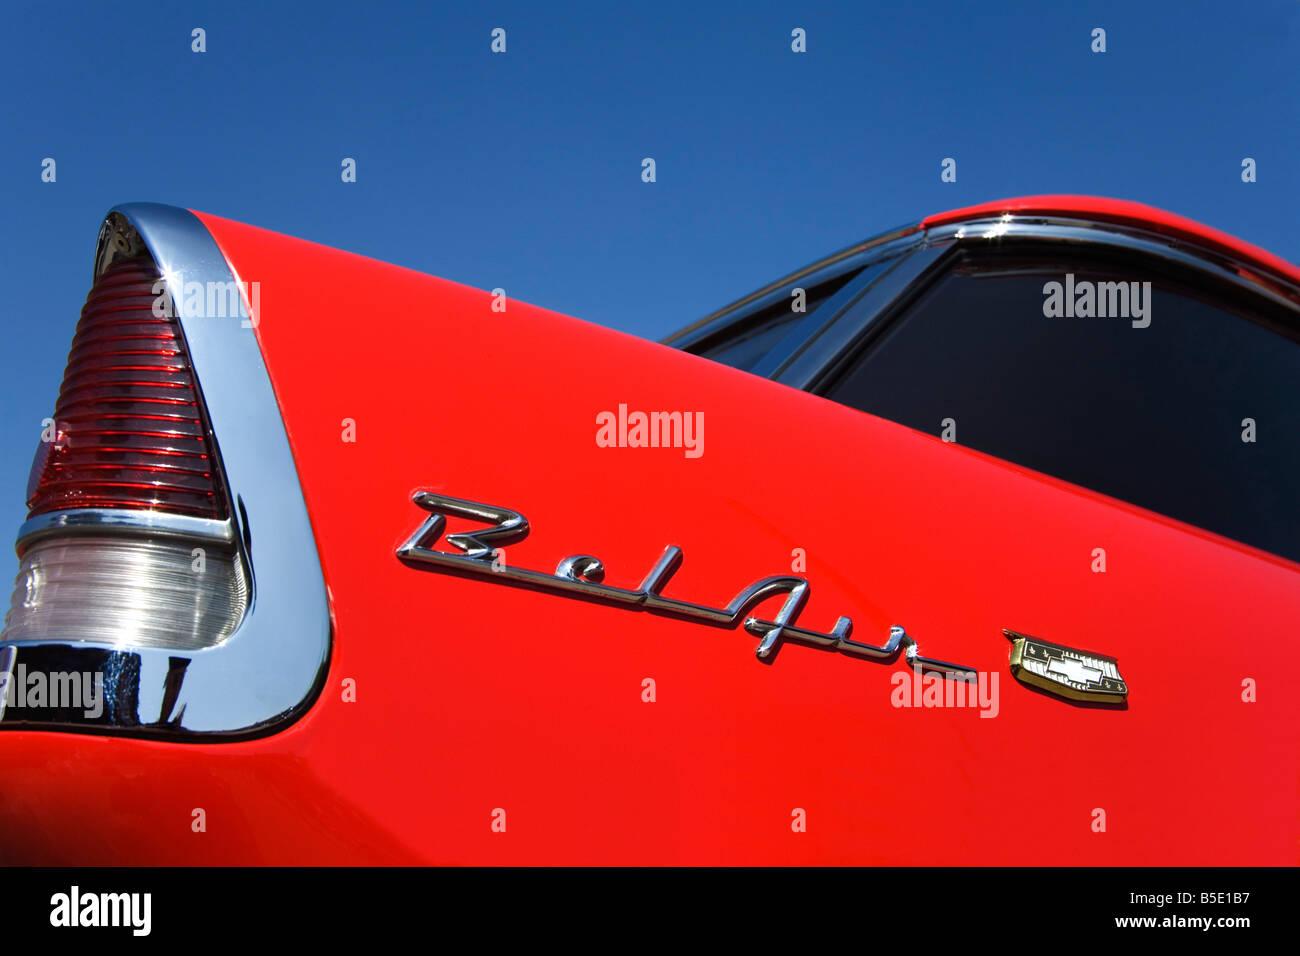 Rear light on 1955 Chevrolet Nomad Bel Air, USA, North America - Stock Image